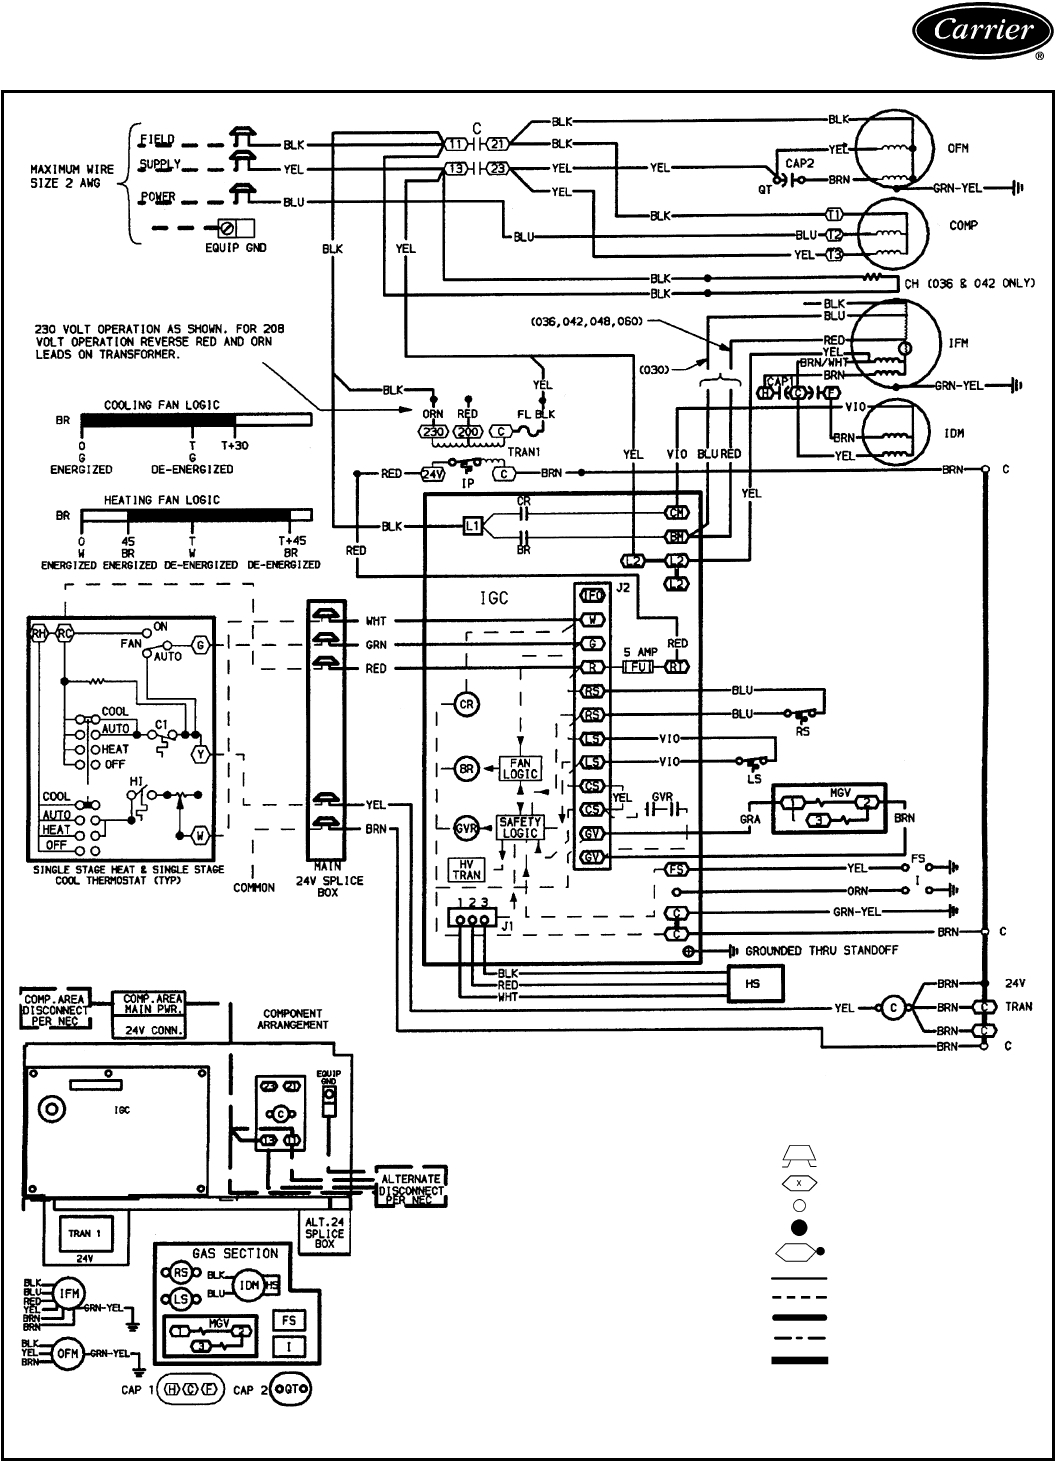 Carrier Infinity Thermostat Wiring Diagram Free Black White Furnace Download Installation Manual